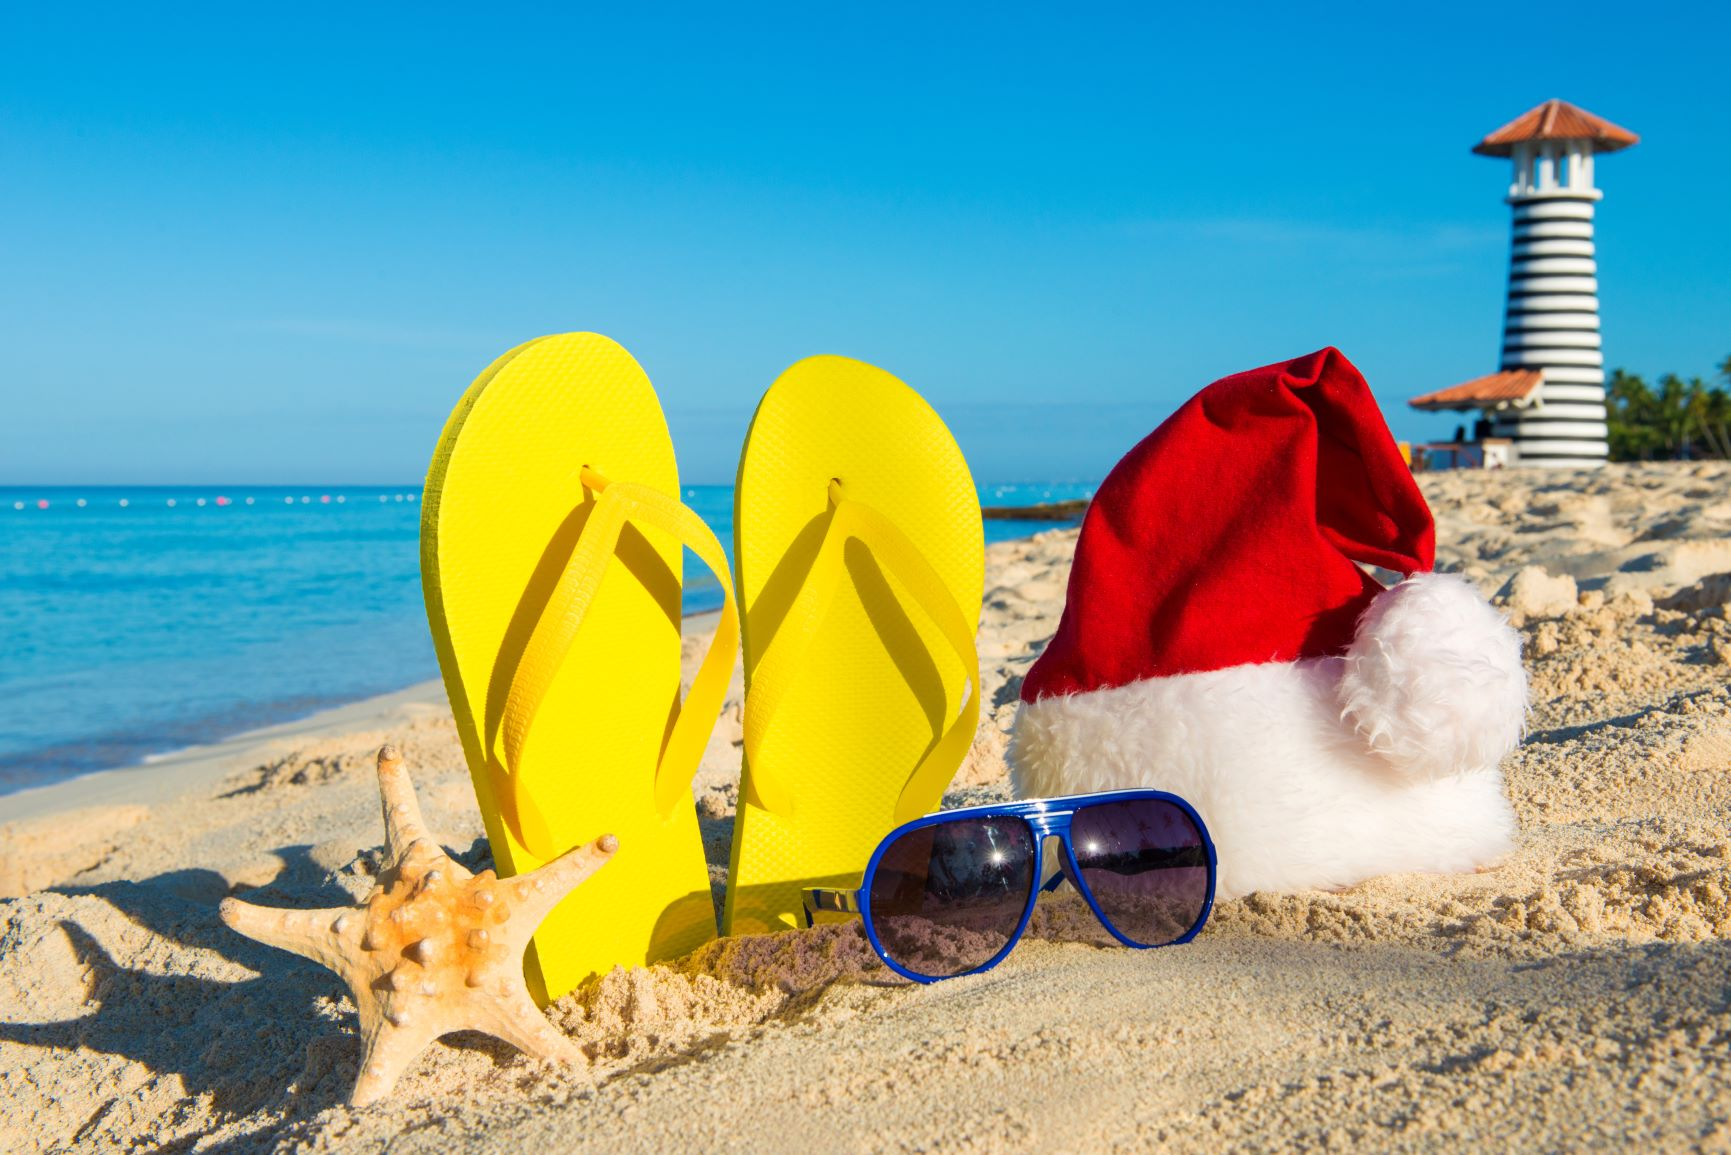 Santa hat and flip flops on the beach